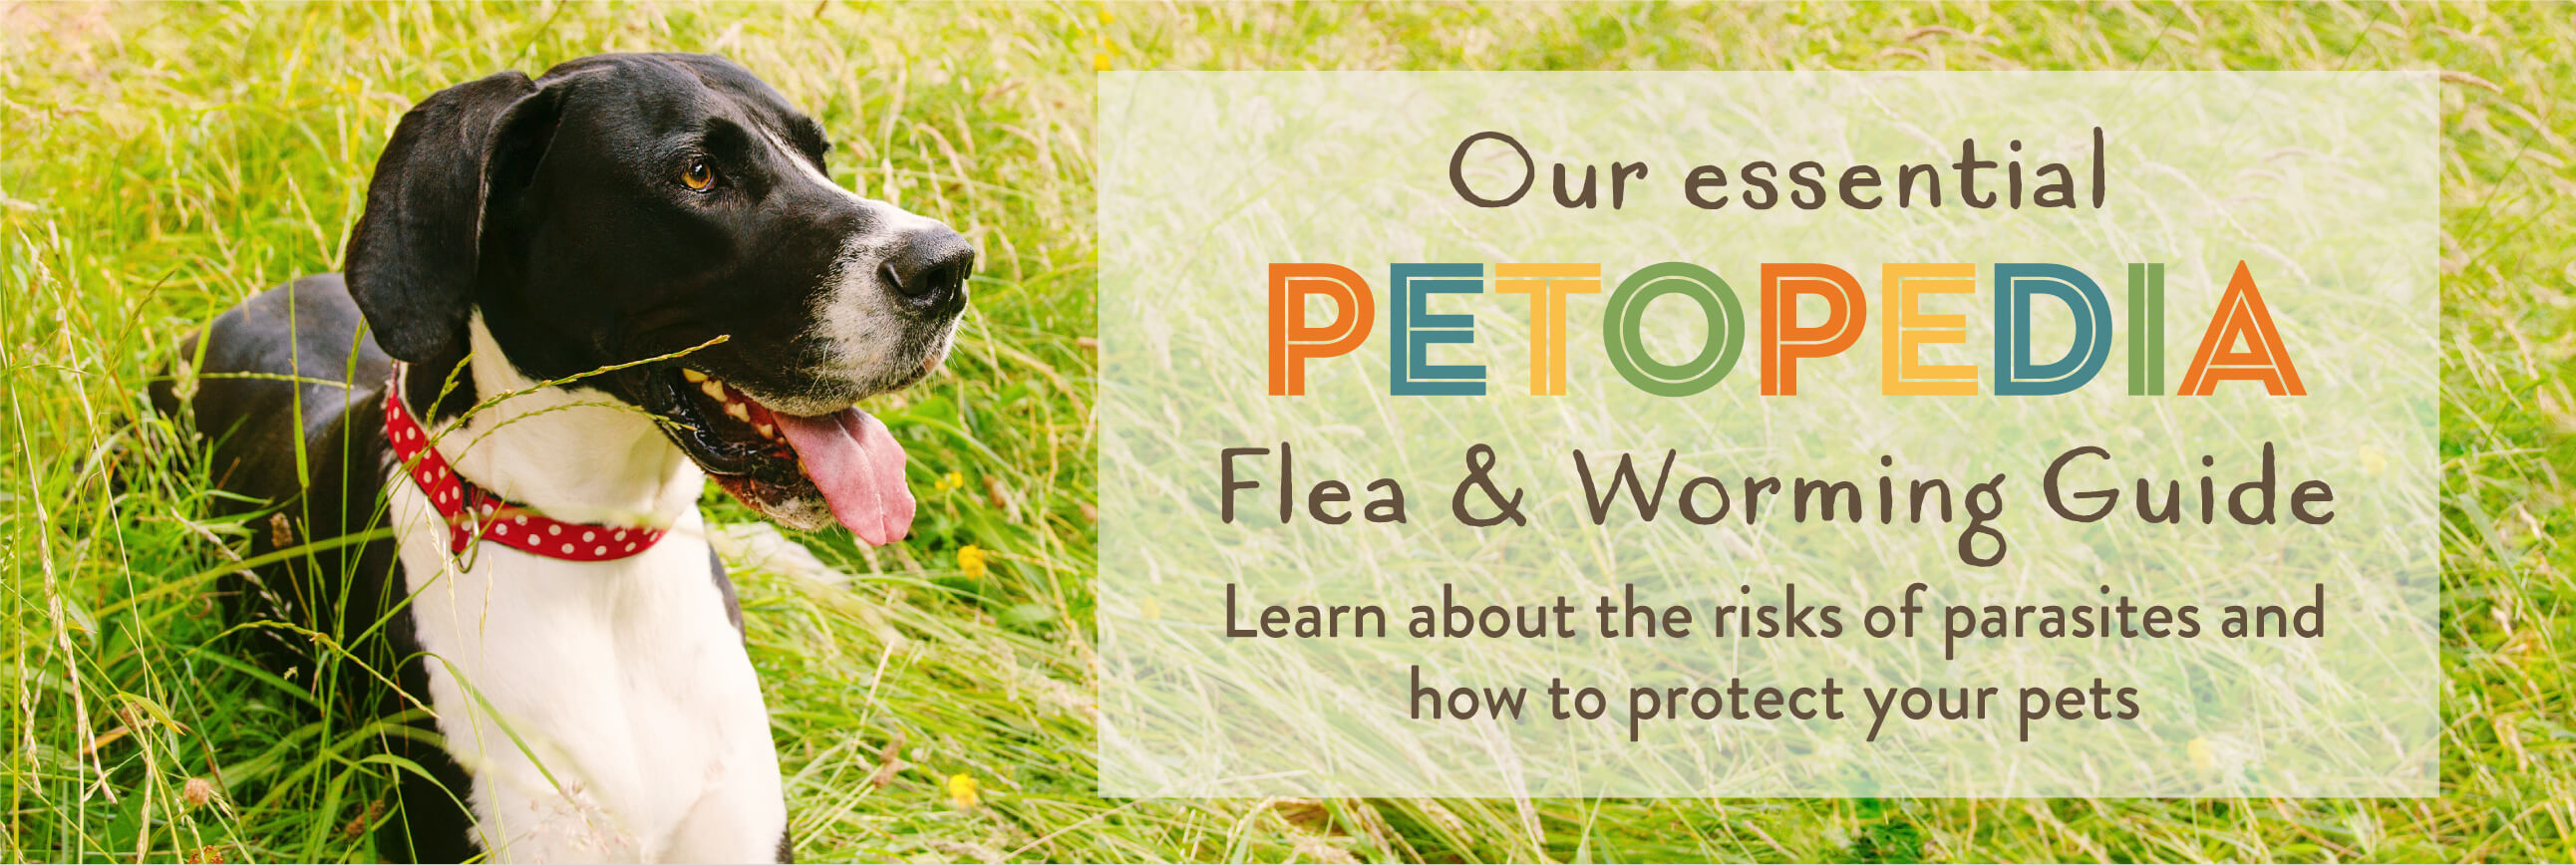 Our Essential Petopedia Flea & Worming Guide